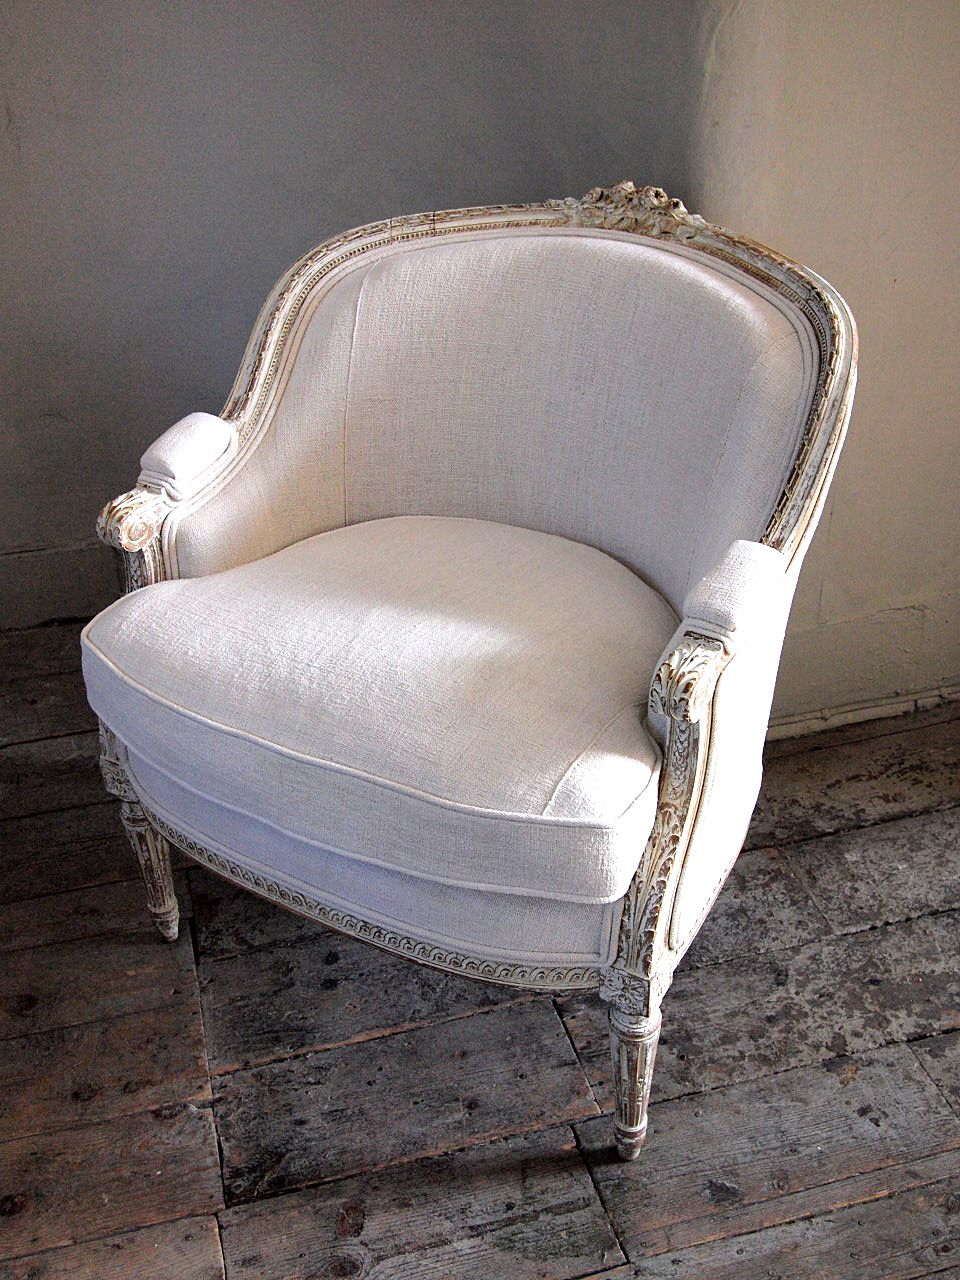 French Antique Tub Chair at Puckhaber Decorative Antiques - Photos Of Babies In Metal Tubs - Google Search Furniture